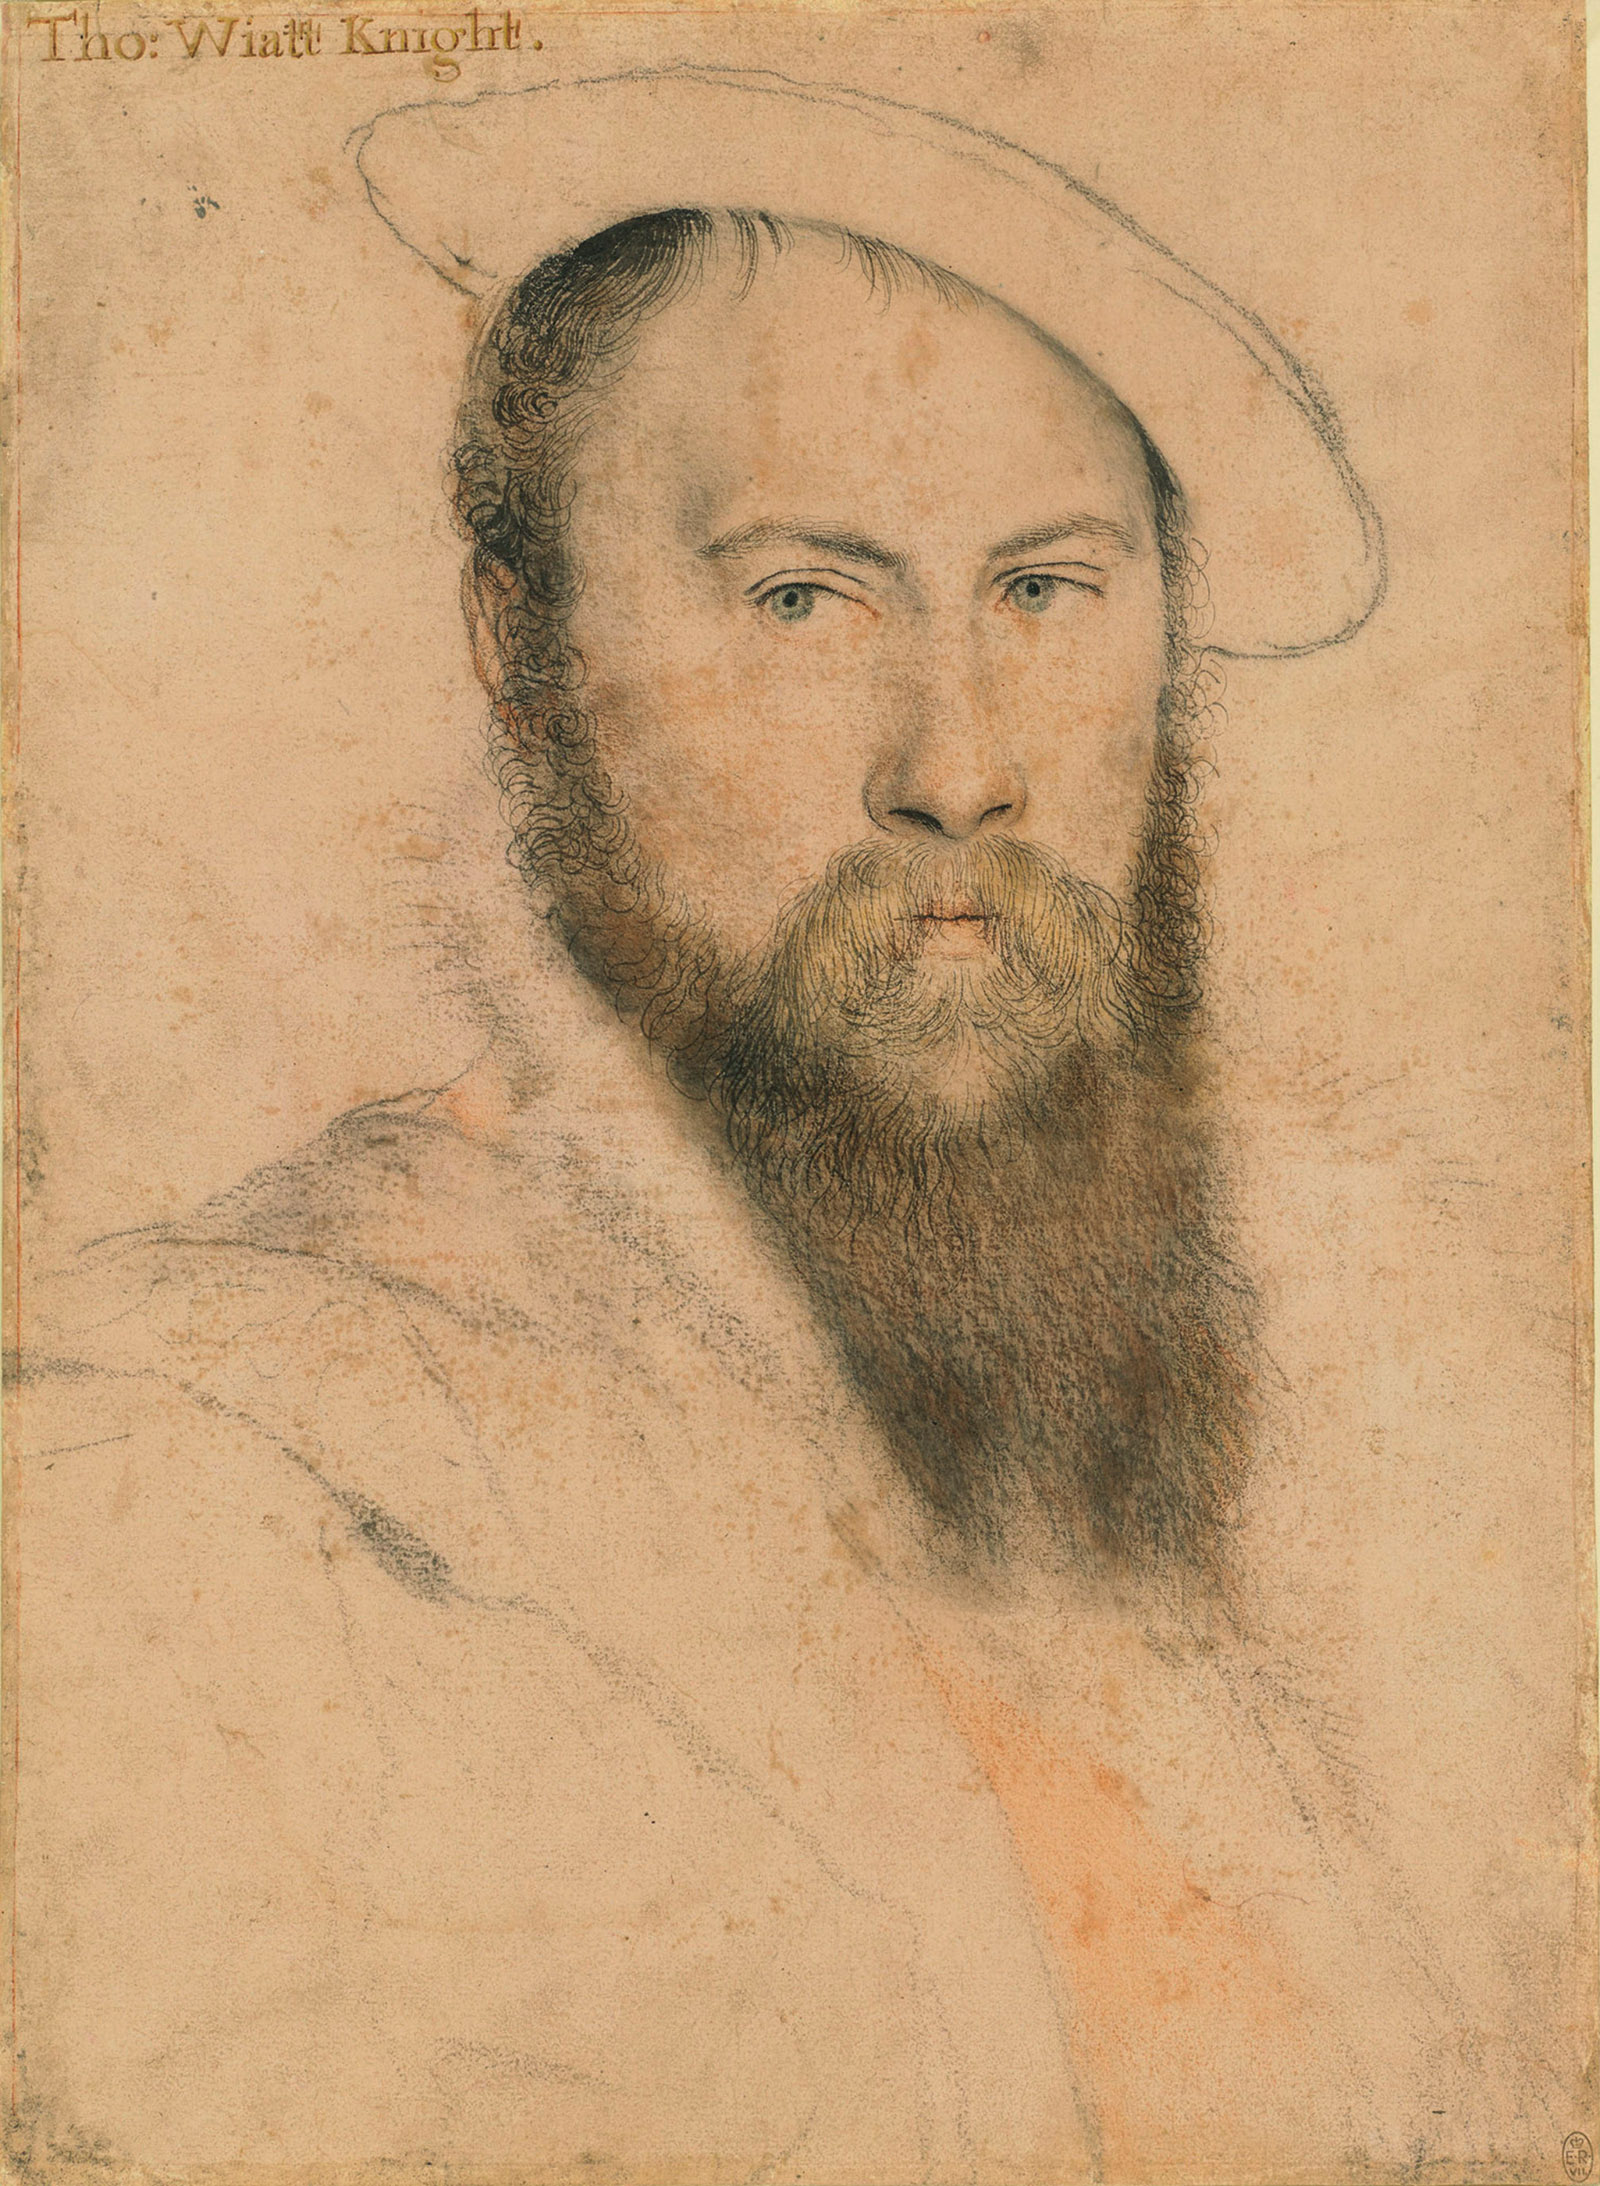 Thomas Wyatt; drawing by Hans Holbein the Younger, circa 1535